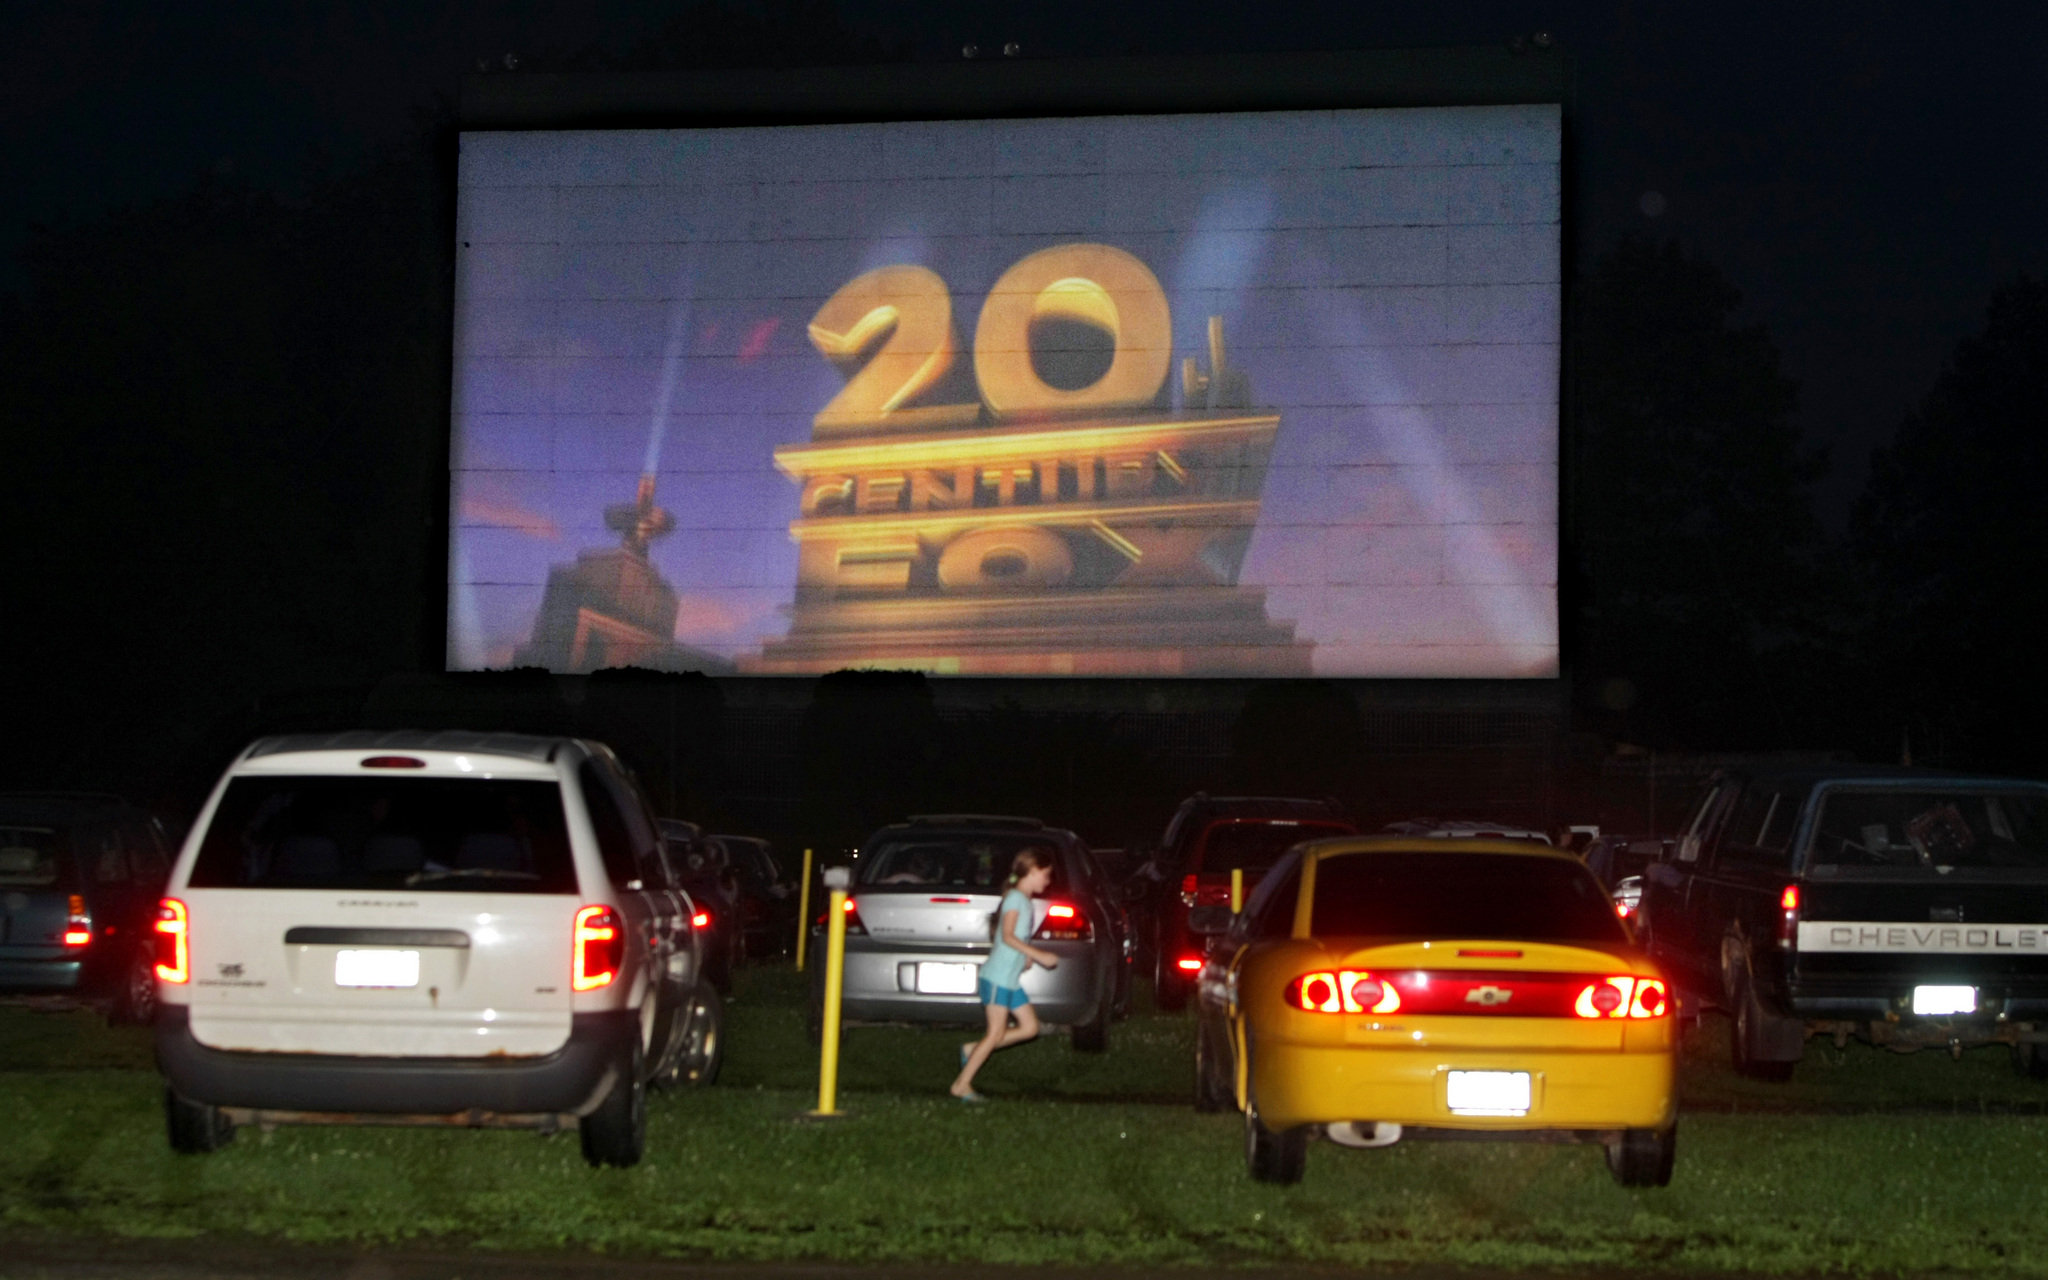 Drive thru movie near me